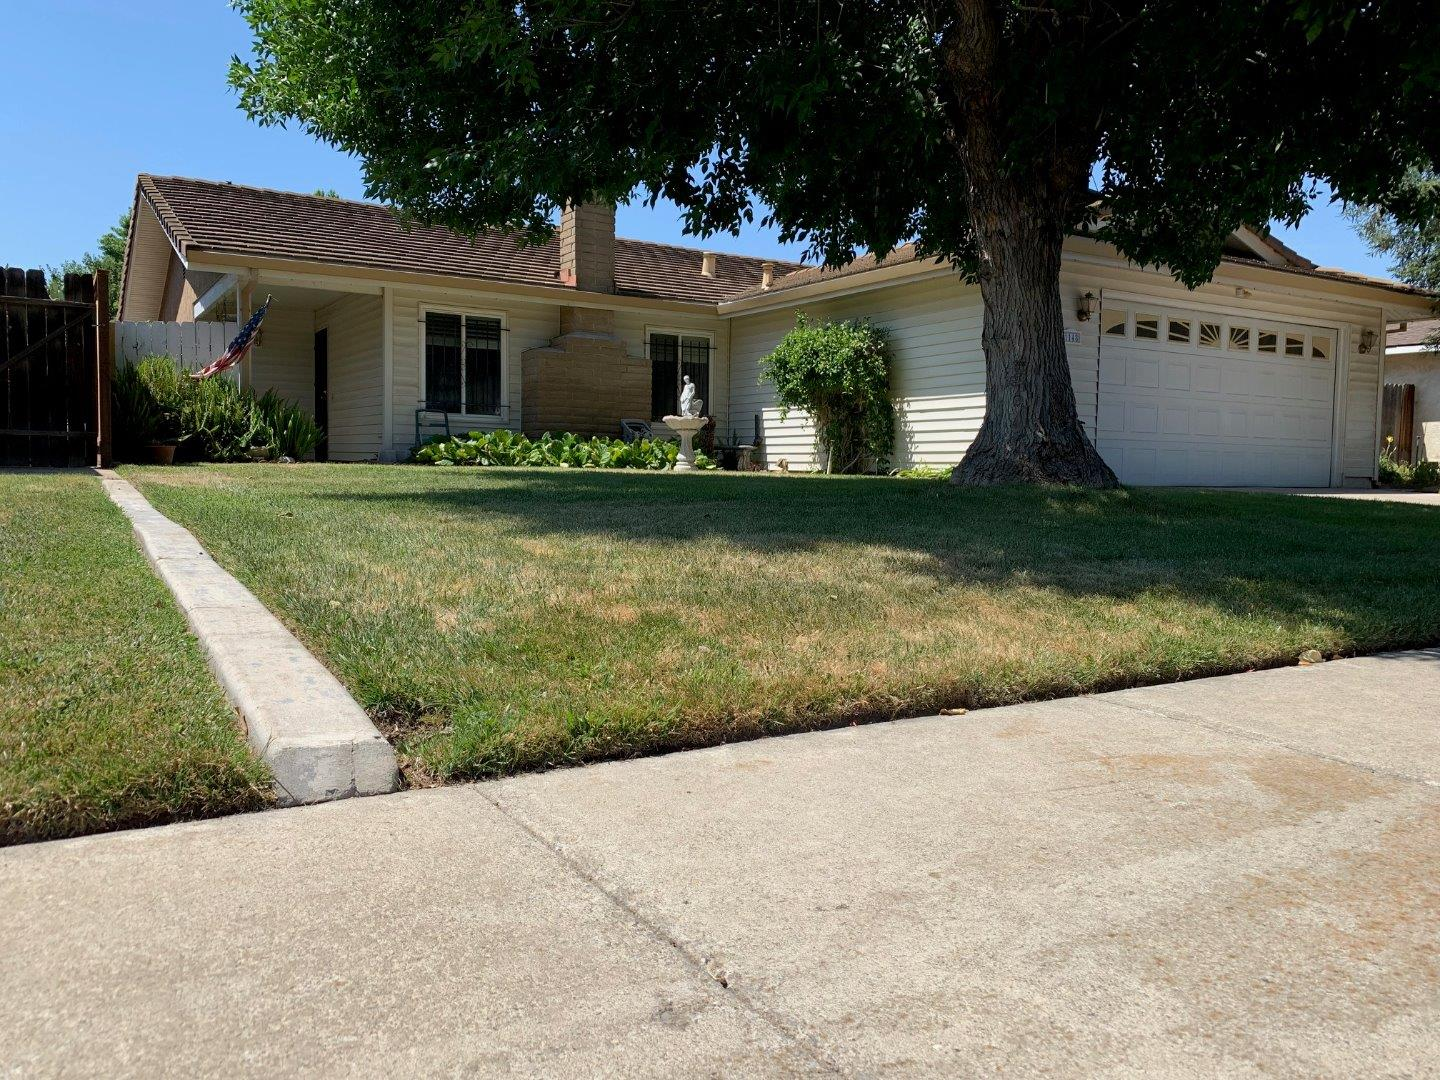 Detail Gallery Image 1 of 27 For 1148 Pepperwood Dr, Manteca, CA, 95336 - 3 Beds   2 Baths